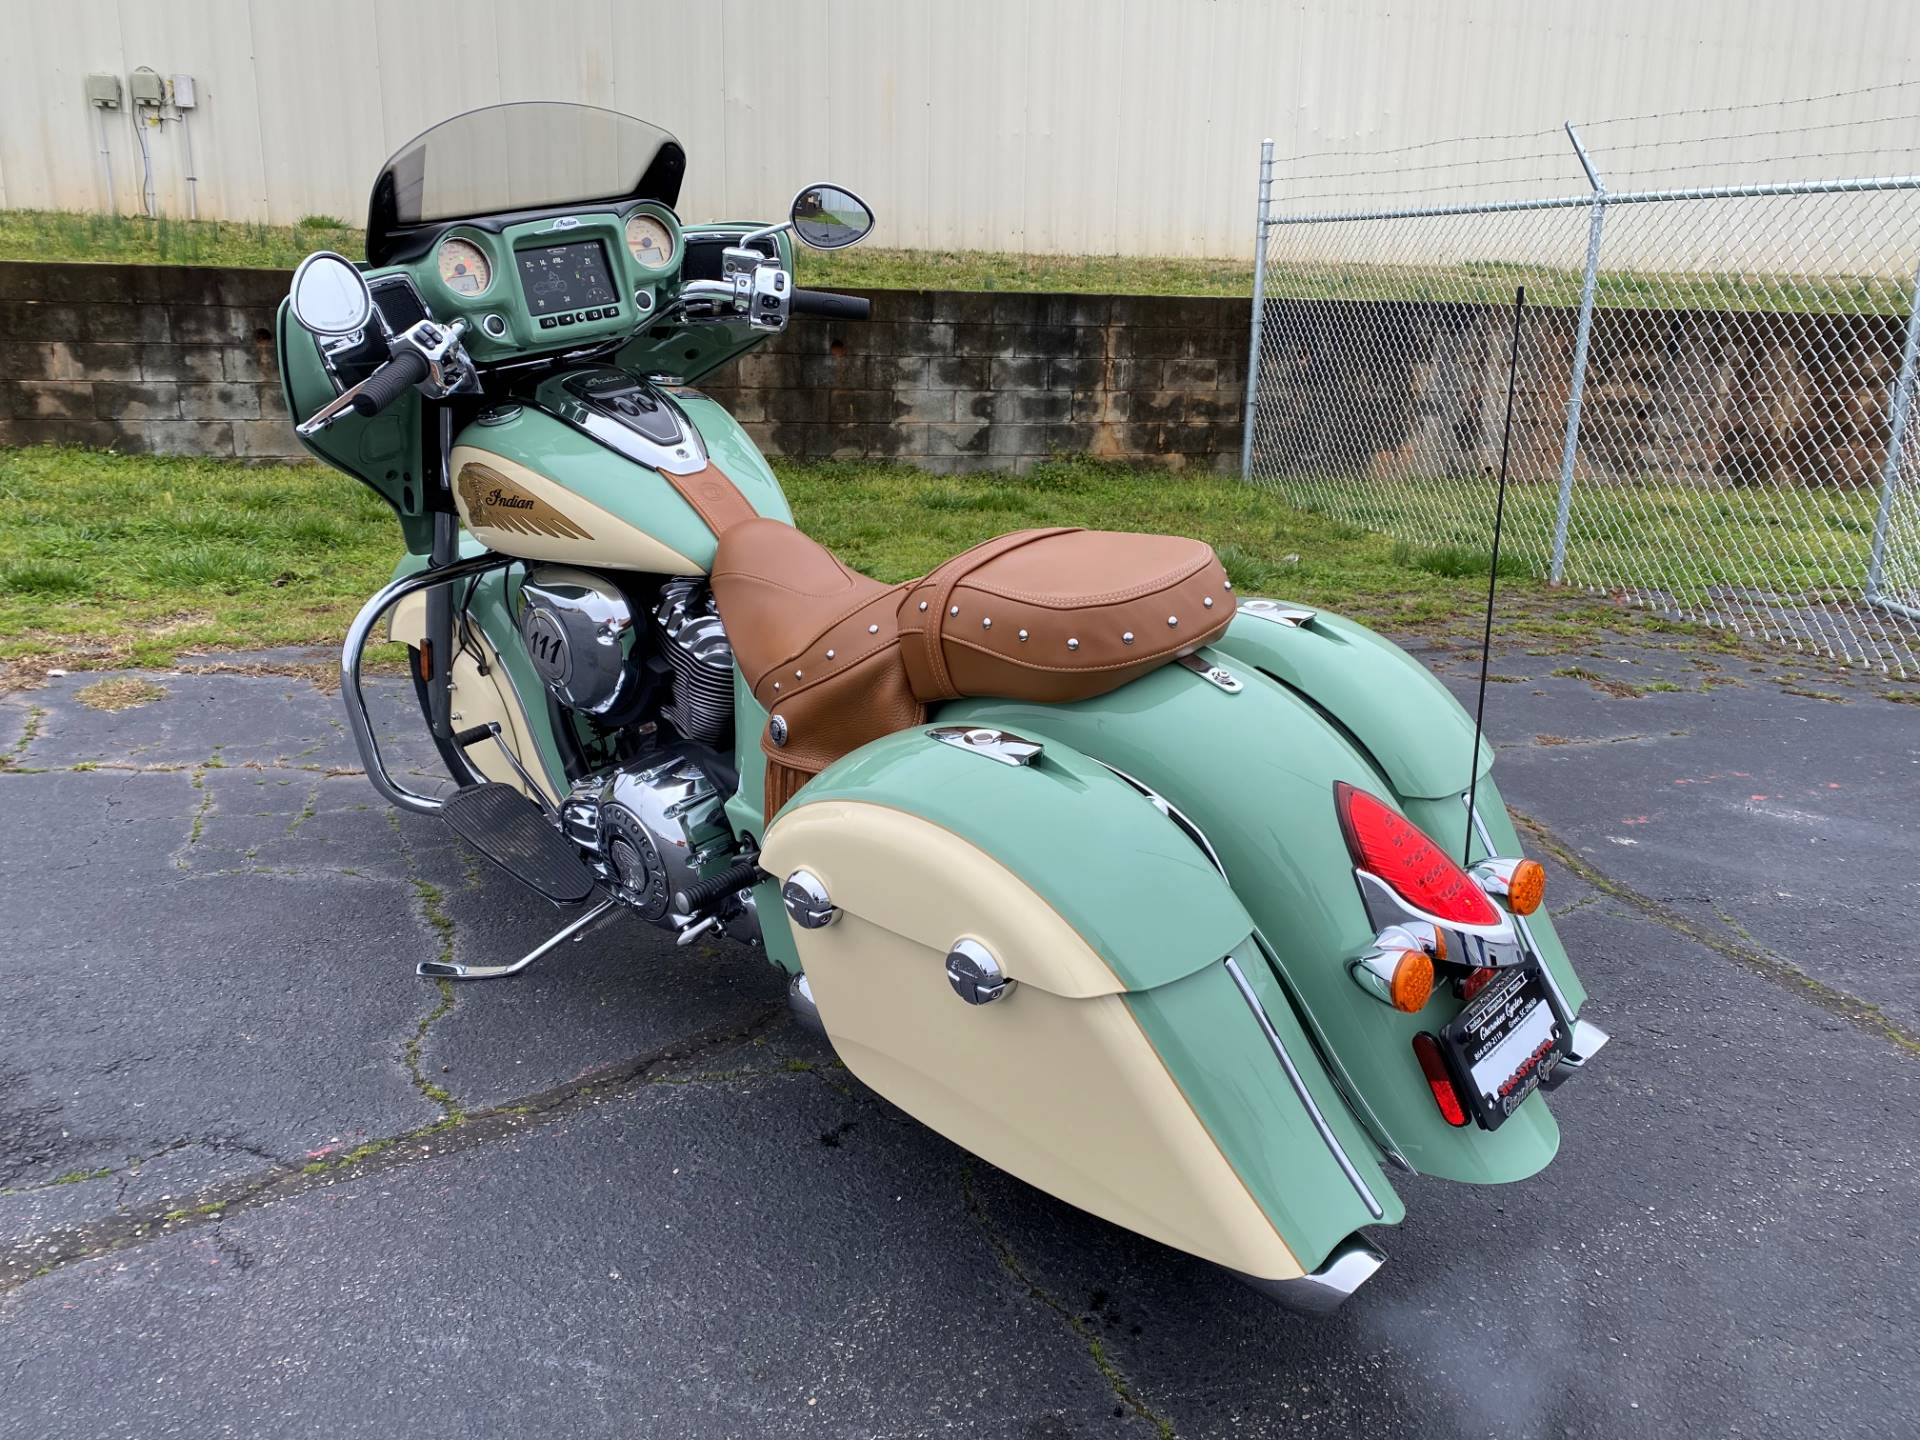 2020 Indian Chieftain Classic Icon Series - Photo 10